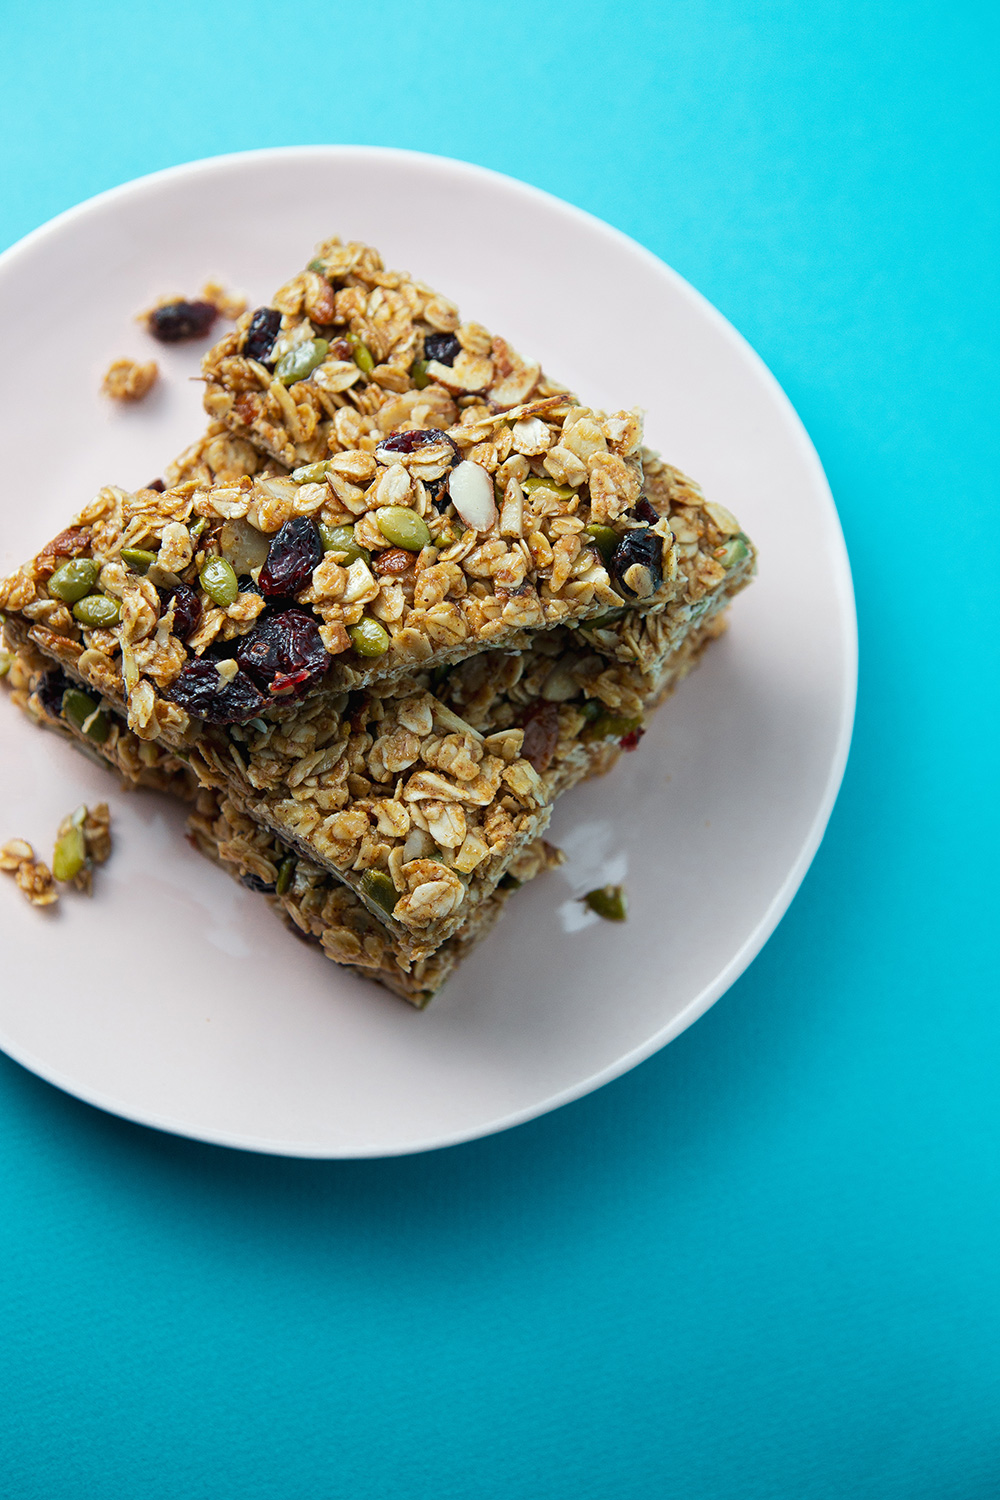 Copy of Gluten Free Granola Bars